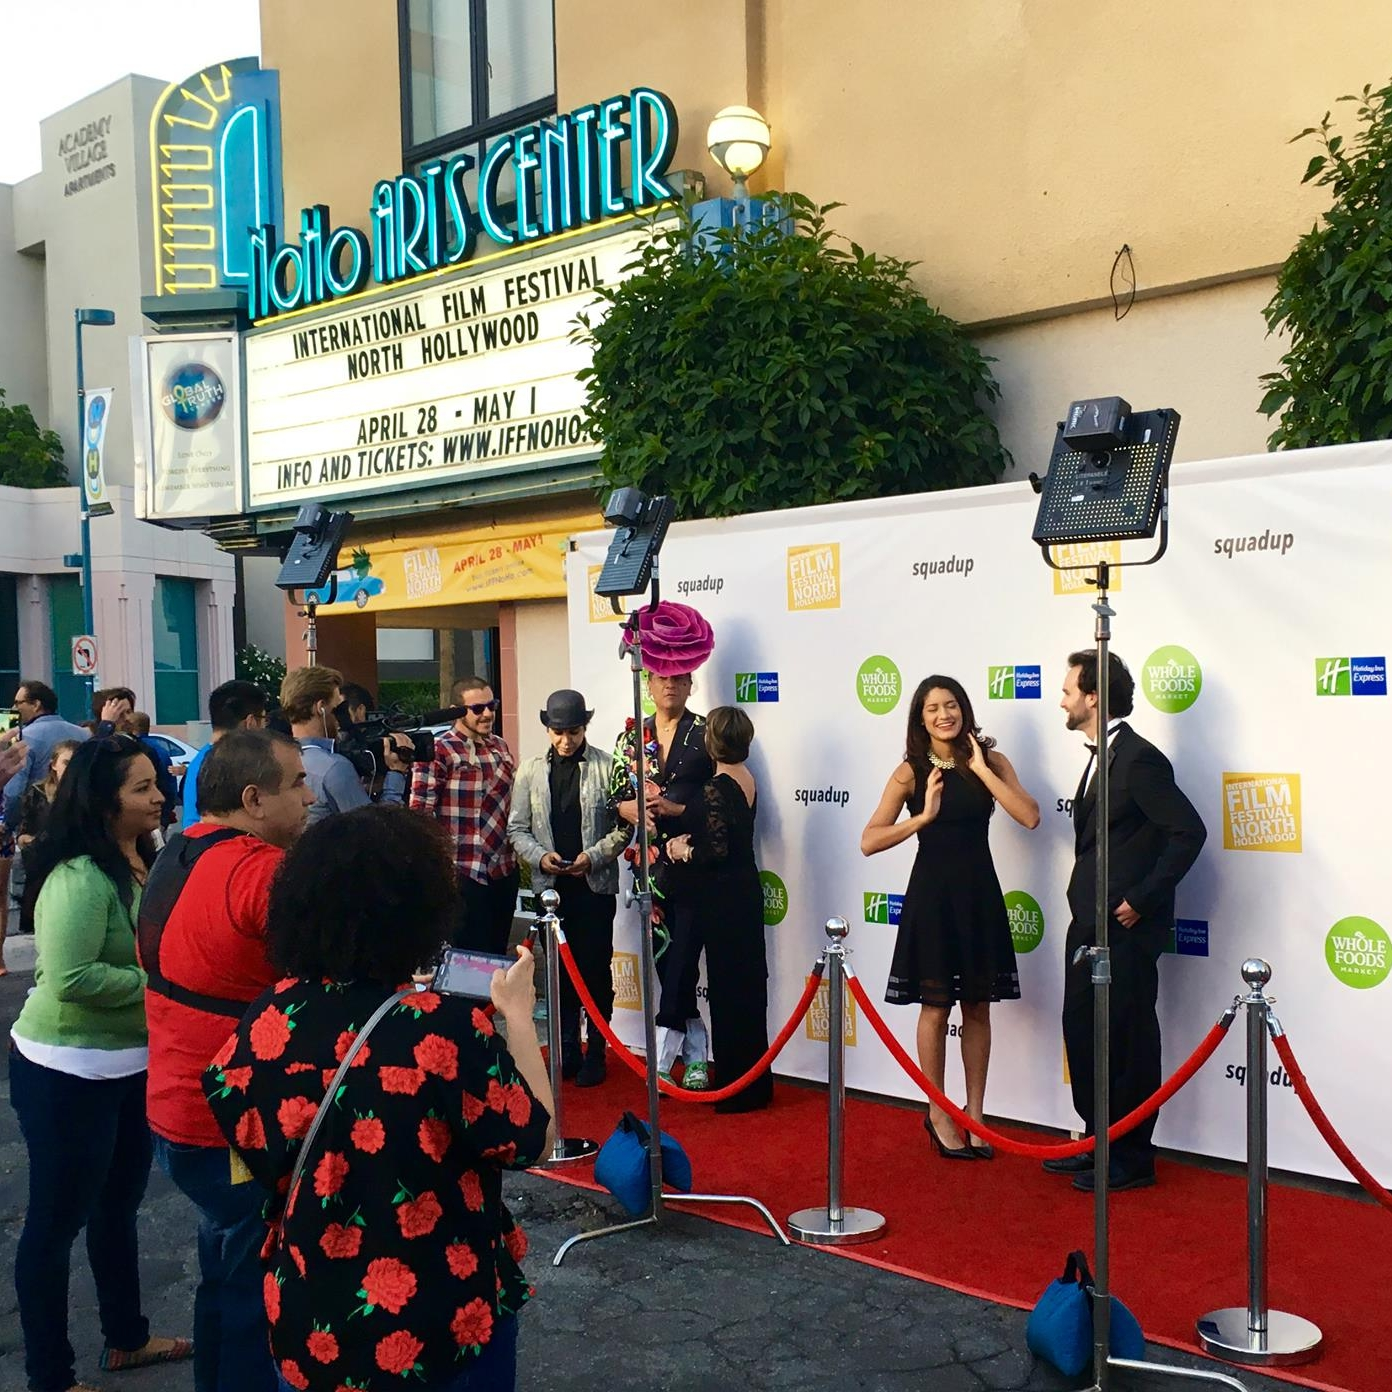 Inaugural Film Festival, IFFNoHo - NoHo Arts Center | North Hollywood, CAApril 28 - May 1, 2015